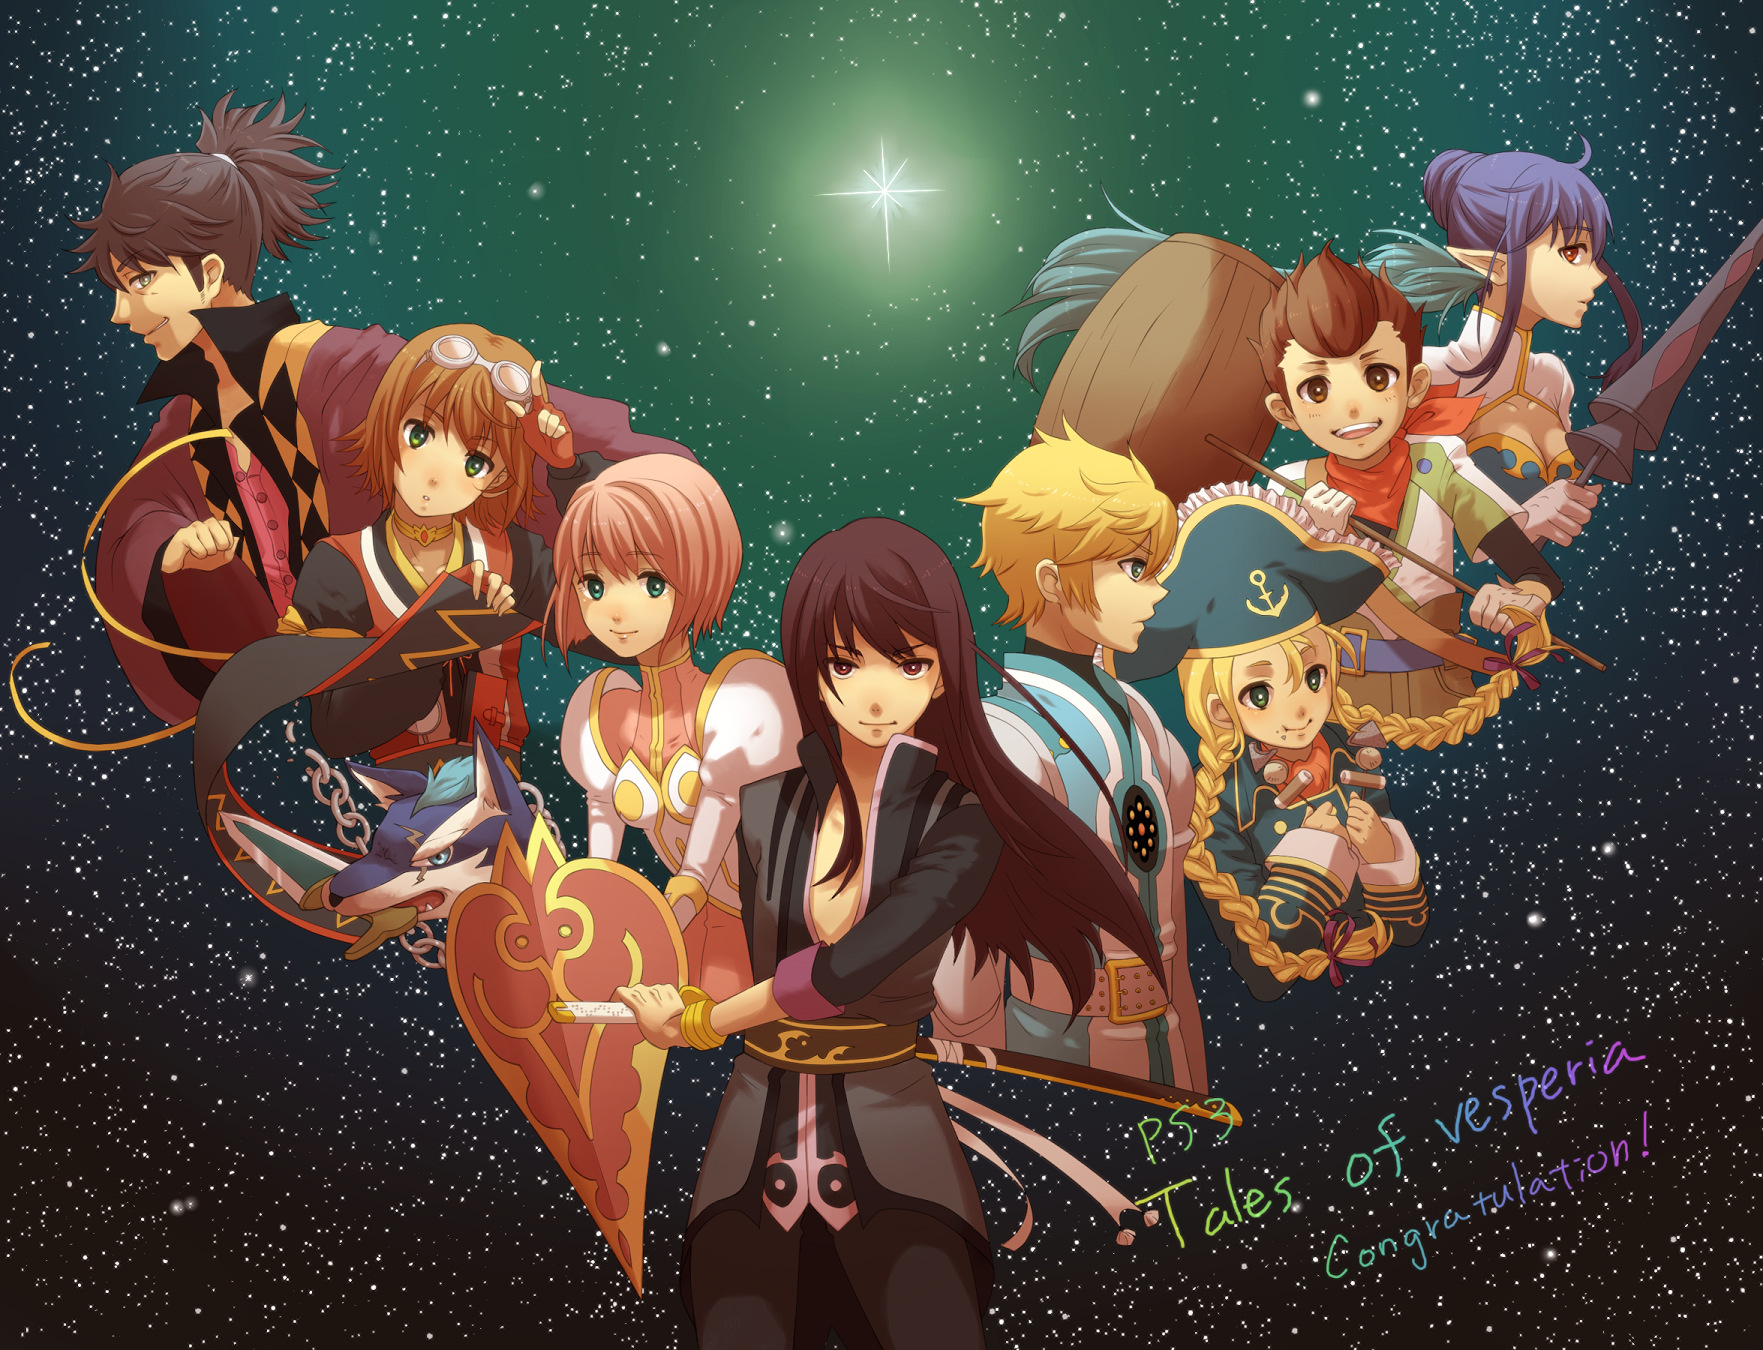 Anime Tales Of Vesperia Wallpaper 1763x1350 Anime Tales Of Vesperia 1763x1350